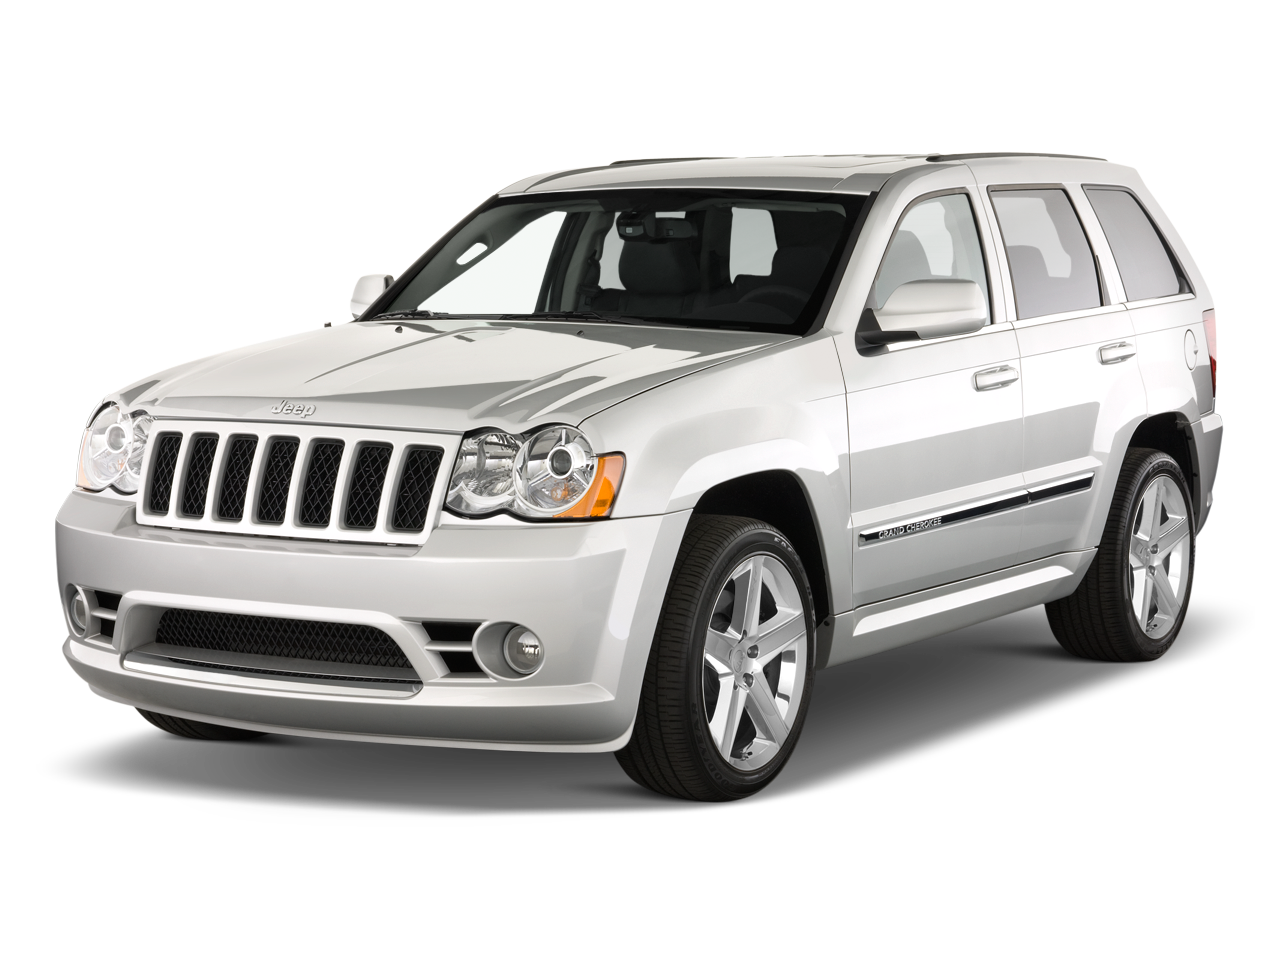 2008 jeep grand cherokee partsopen. Black Bedroom Furniture Sets. Home Design Ideas